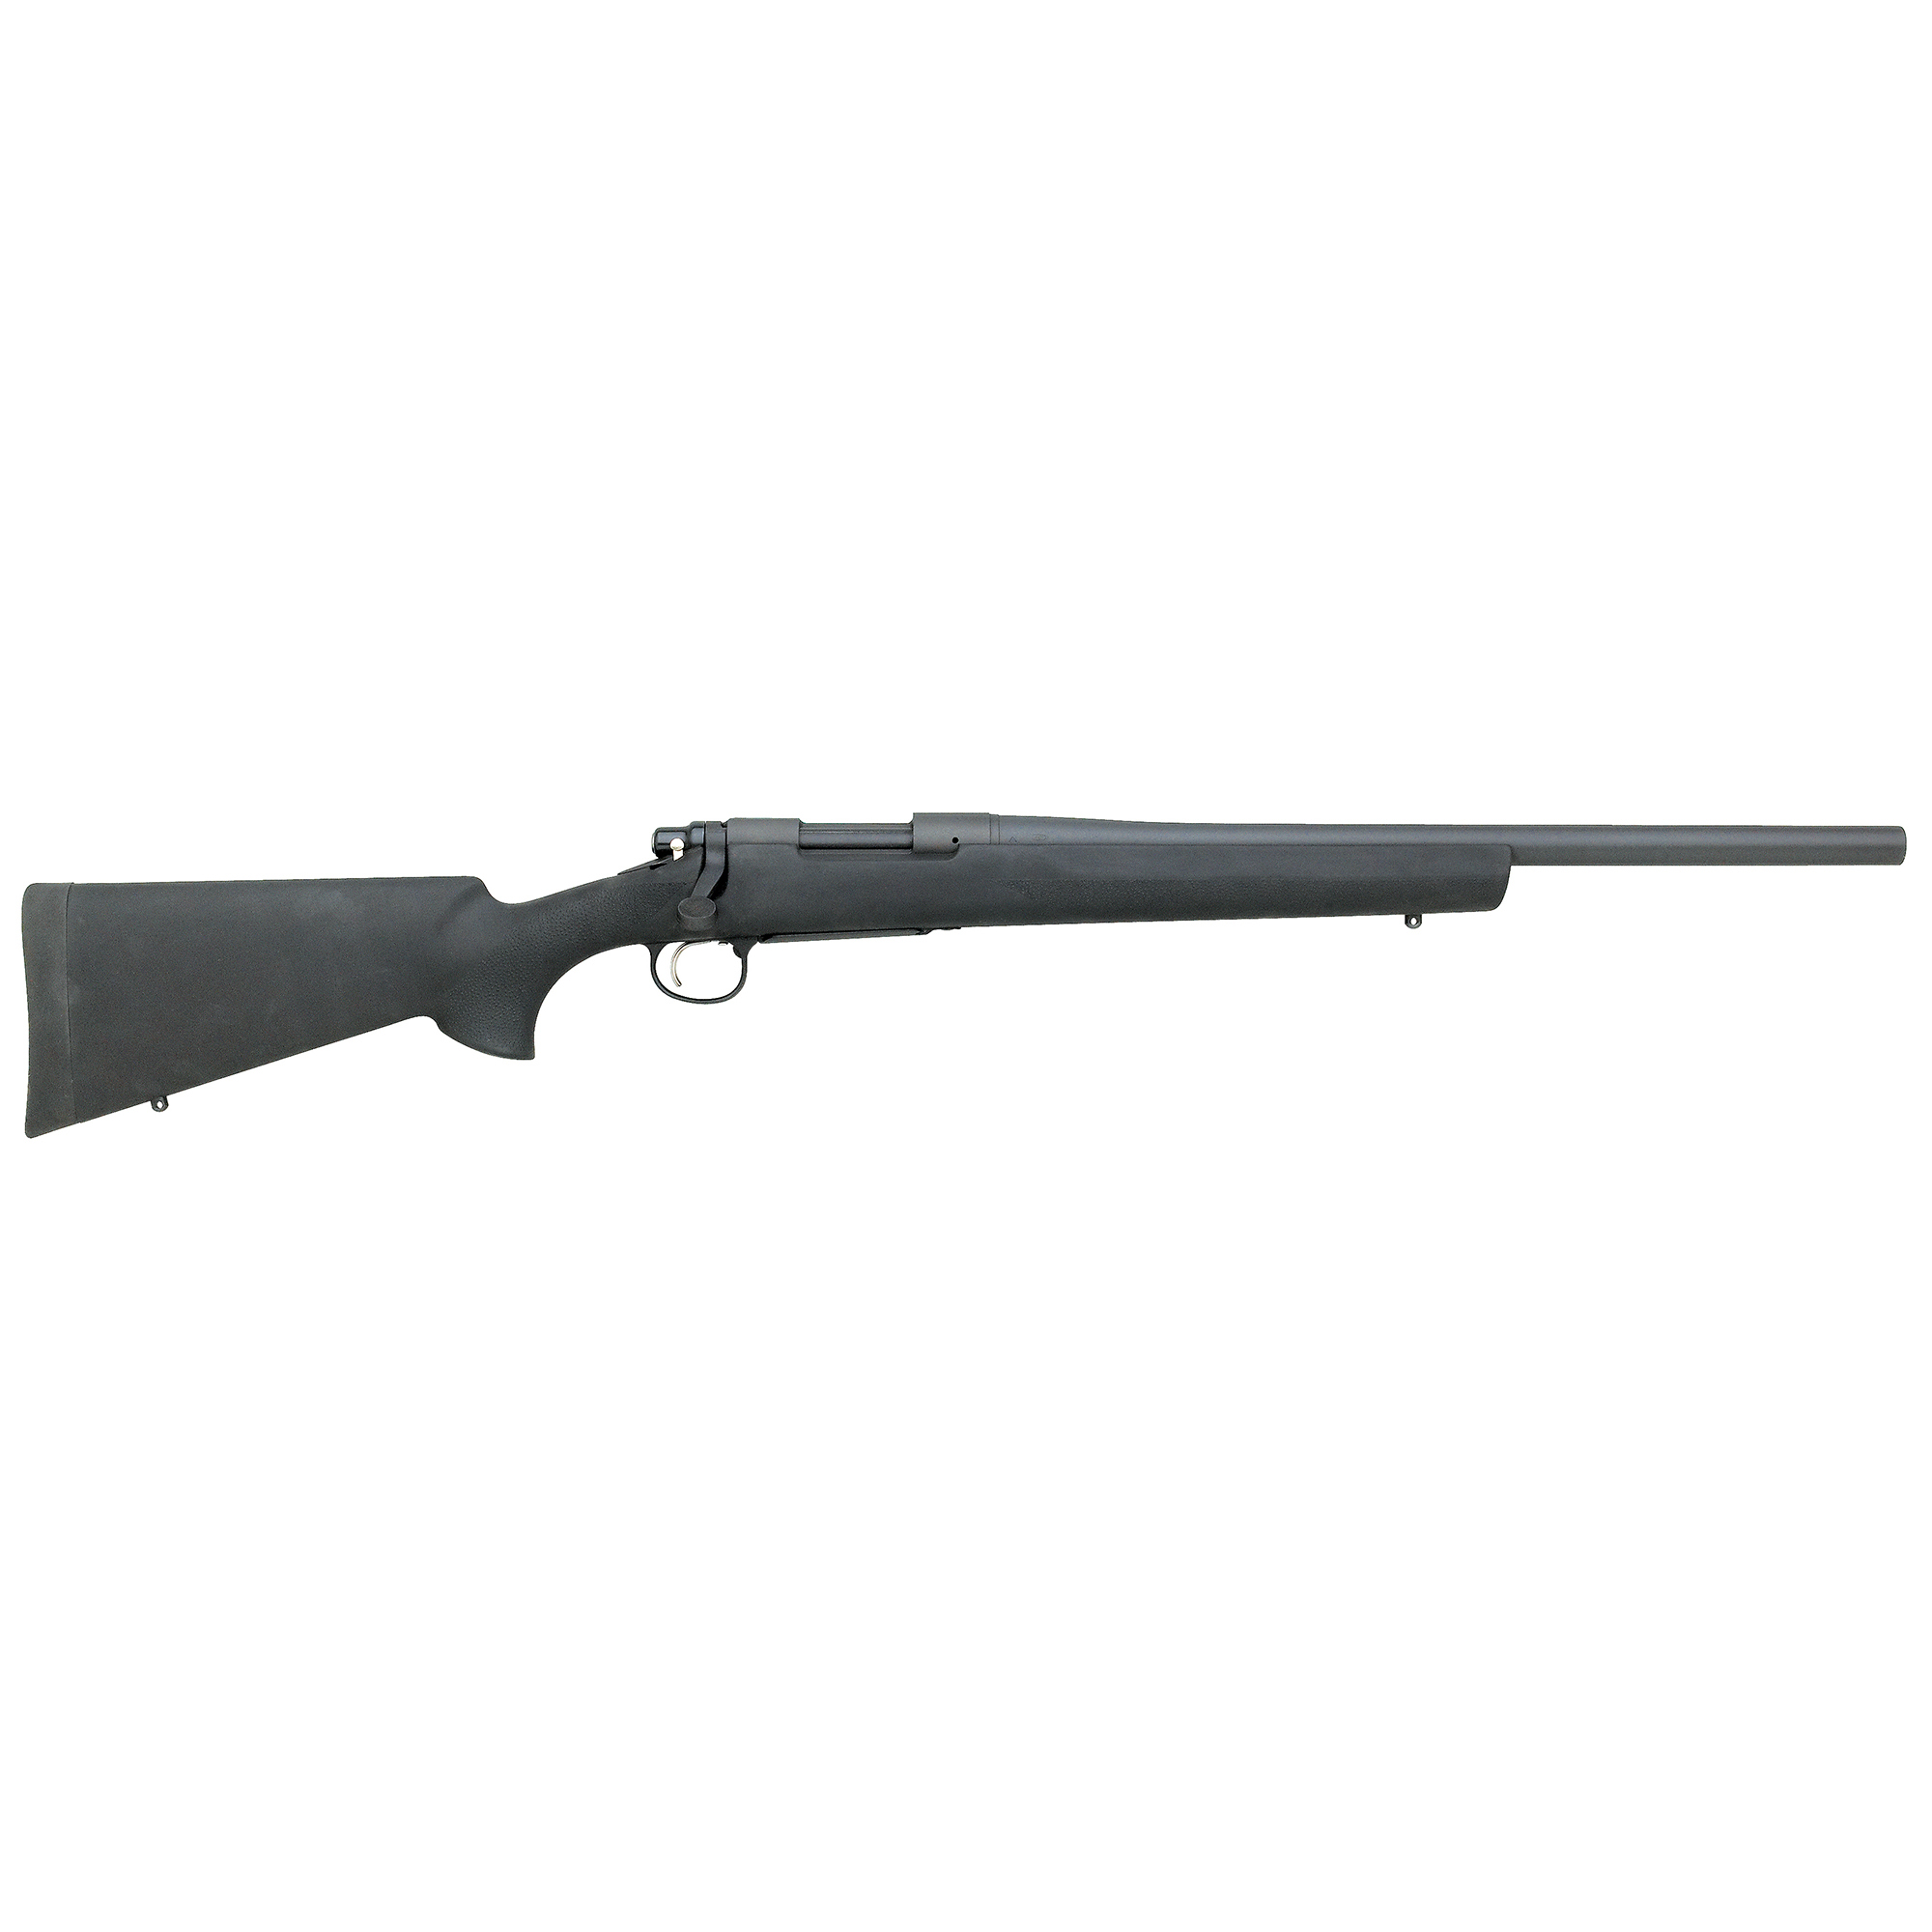 Remington Model 700 SPS Tactical Centerfire Rifle